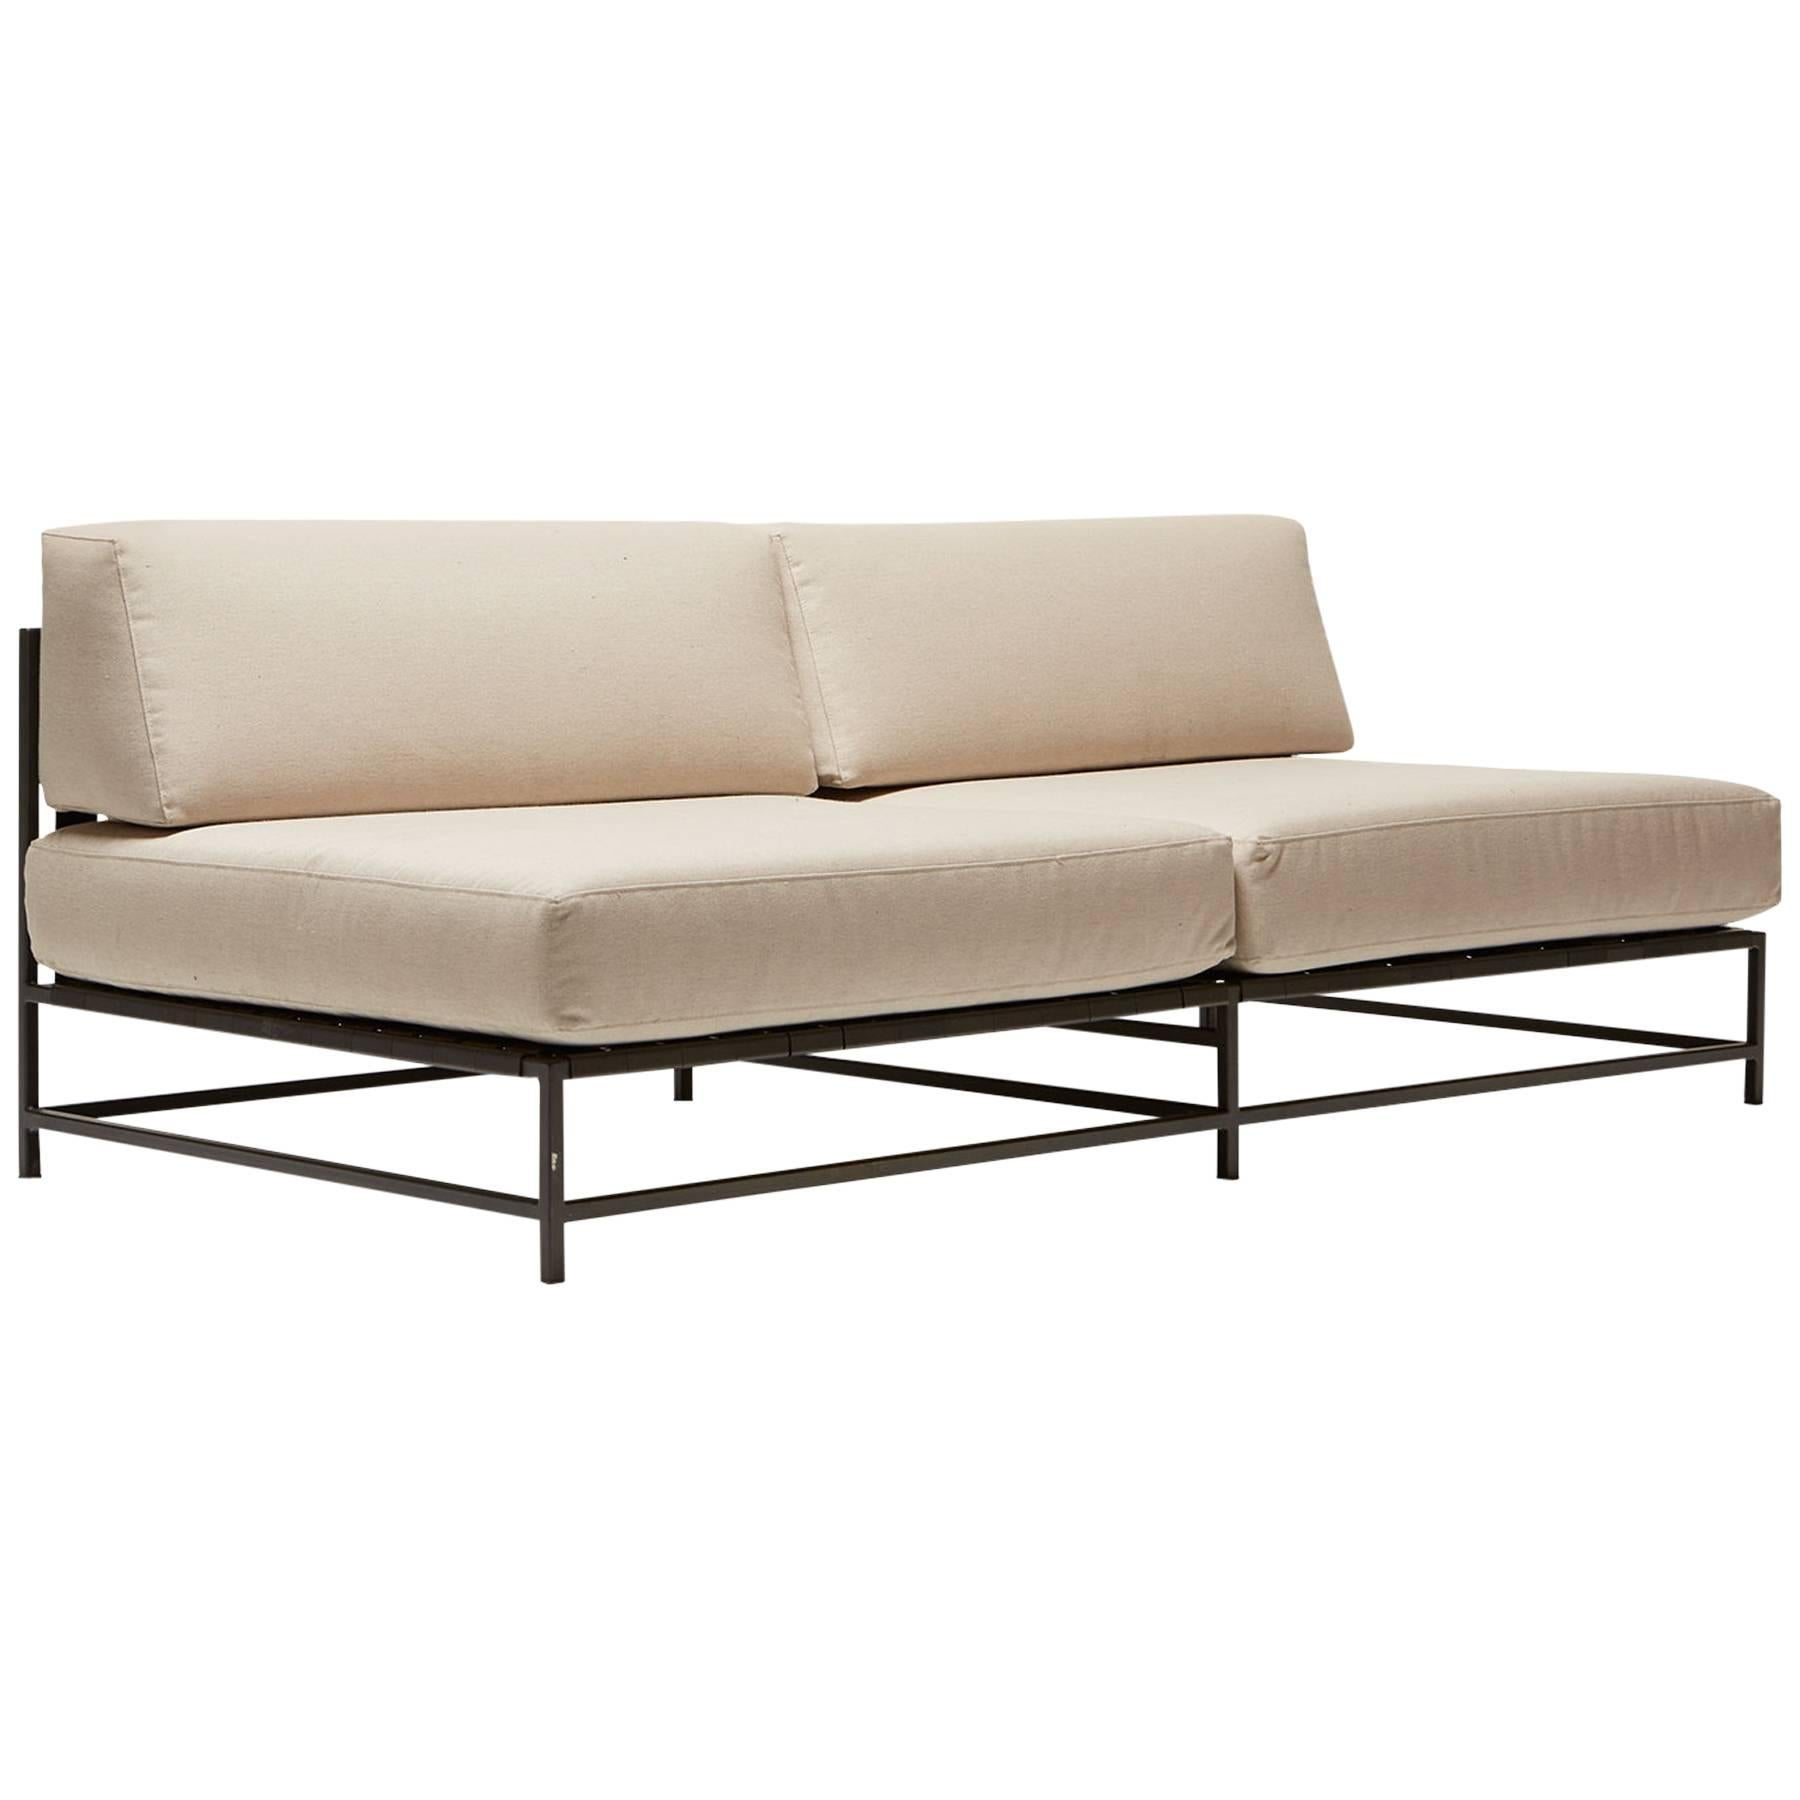 Outdoor Cream and Charcoal Loveseat